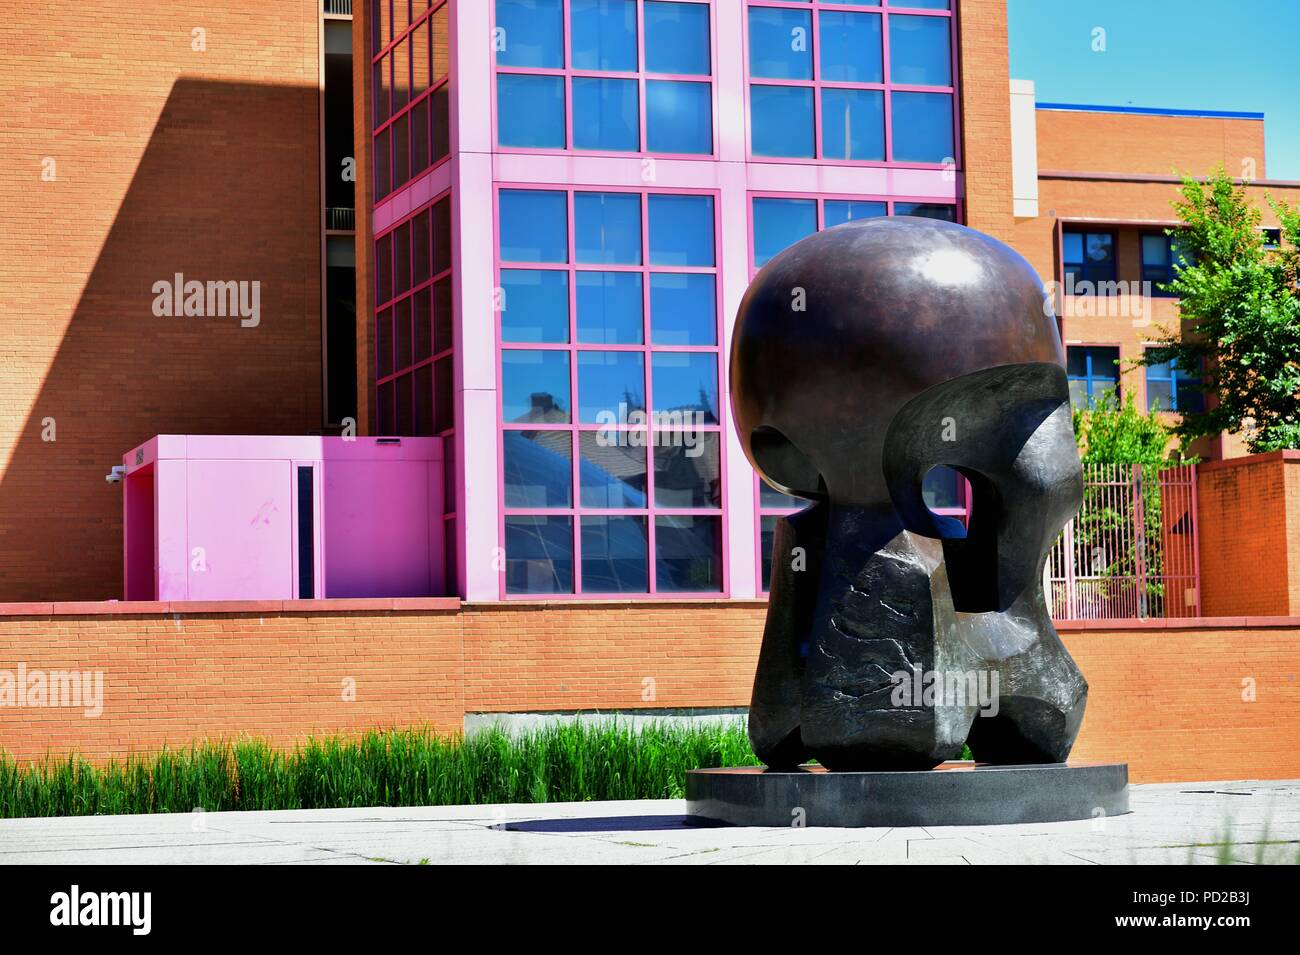 """Chicago, Illinois, USA. The sculpture """"Nuclear Energy"""" by Henry Moore on the campus of the University of Chicago. Stock Photo"""